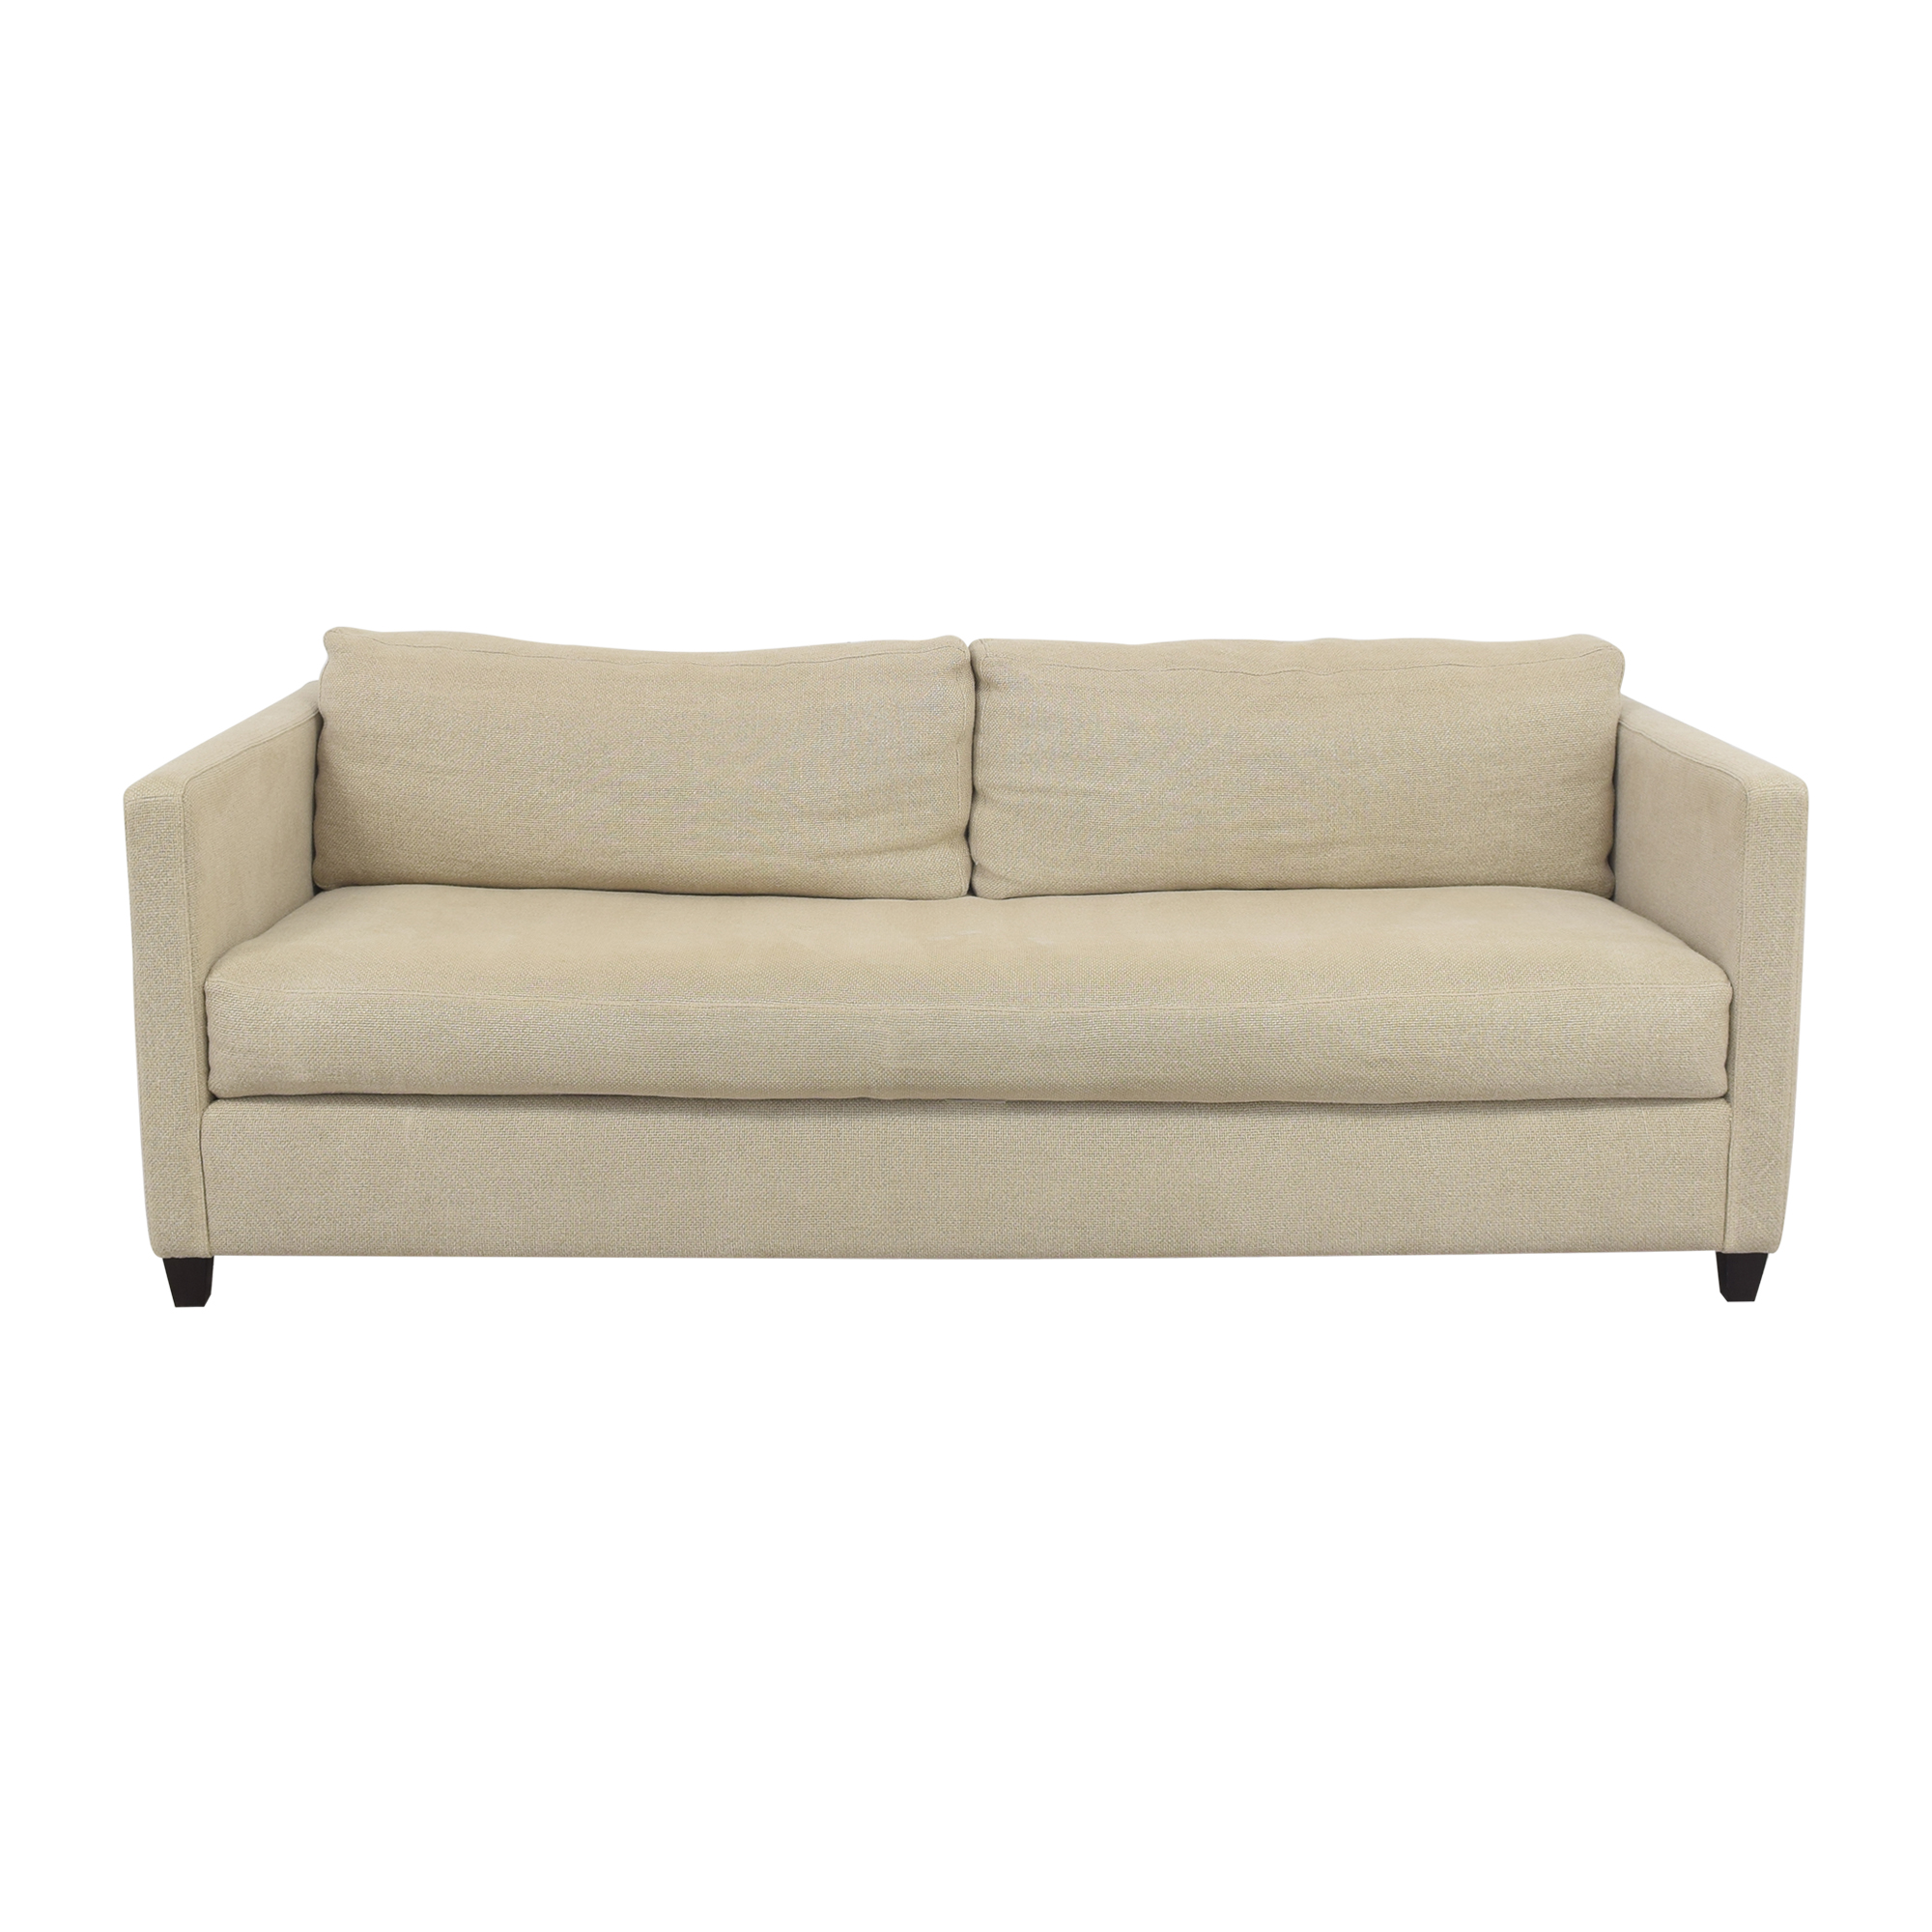 buy ABC Carpet & Home Contemporary Sofa ABC Carpet & Home Classic Sofas